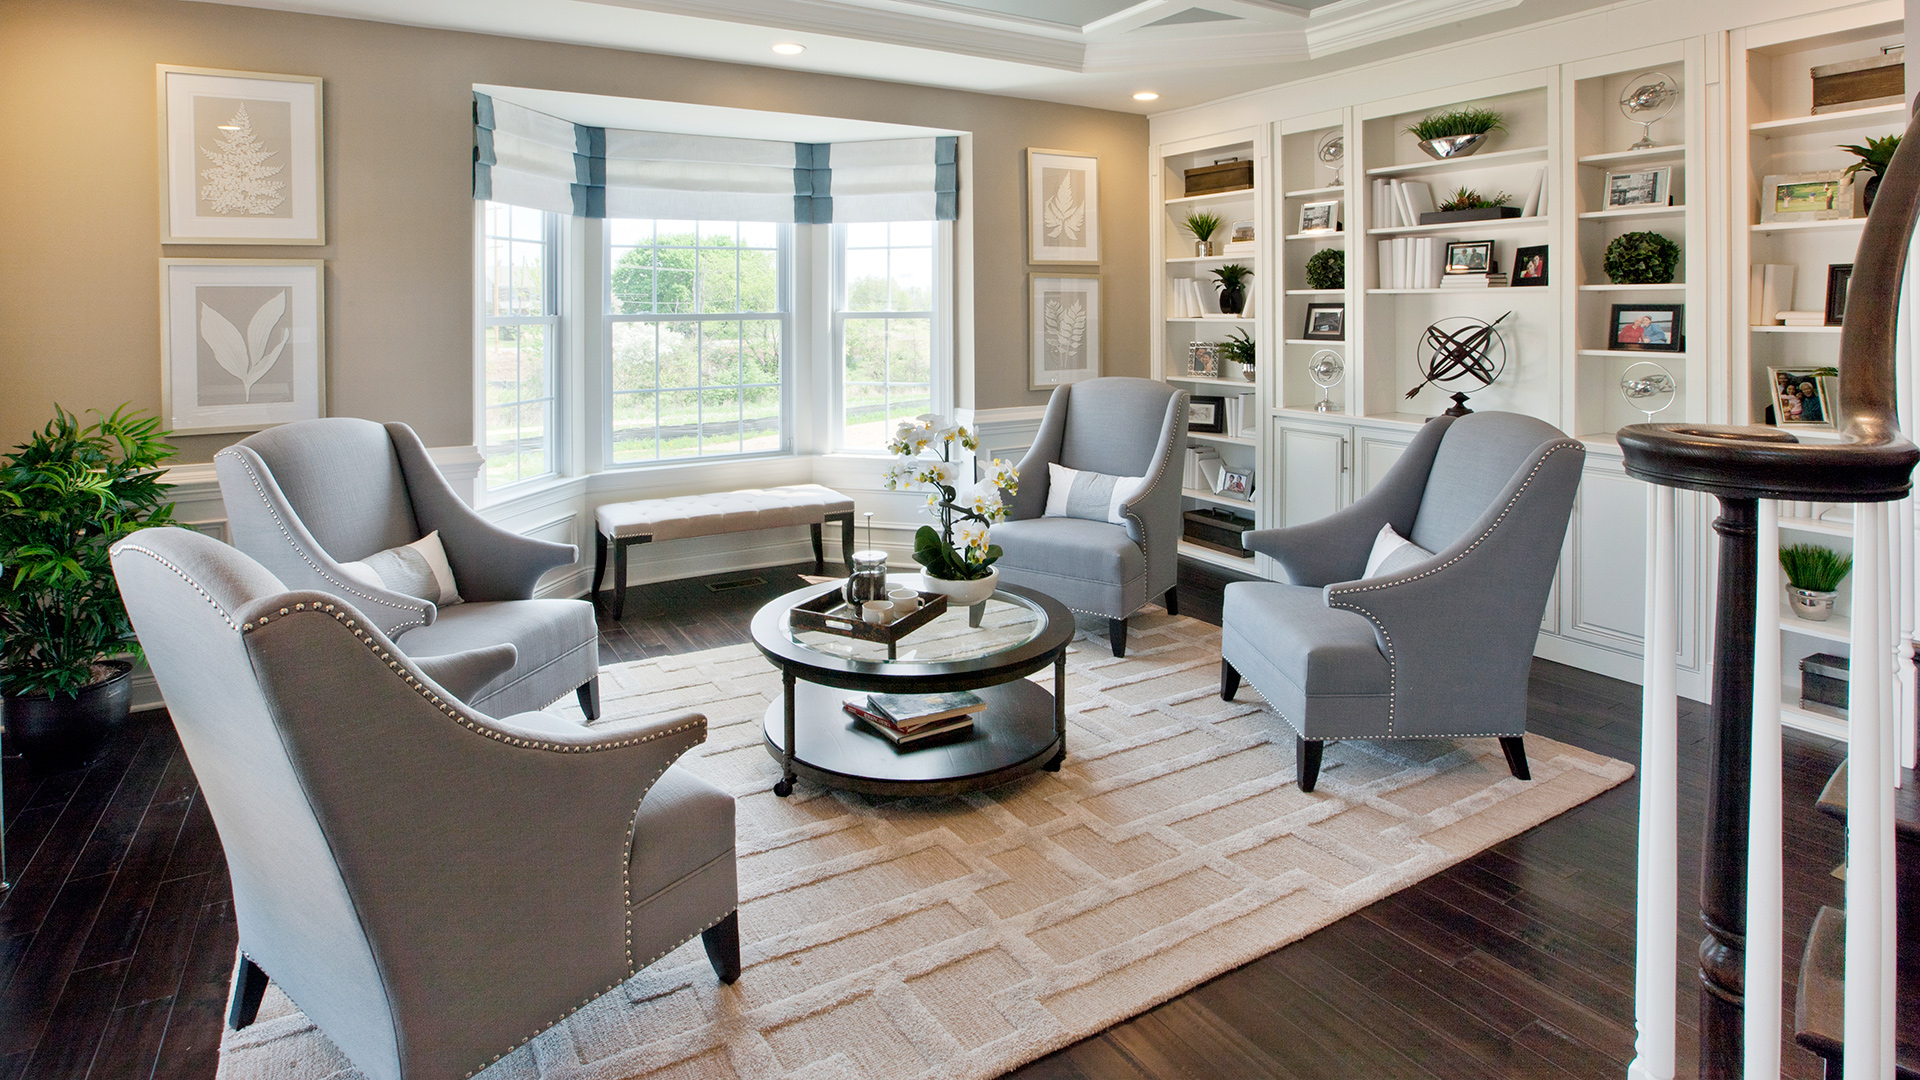 Color Is A Primary Design Element And Helps Create The Ambiance In Each  Room. One Way To Get An Elegant And Timeless Style Is To Use Soft, ...